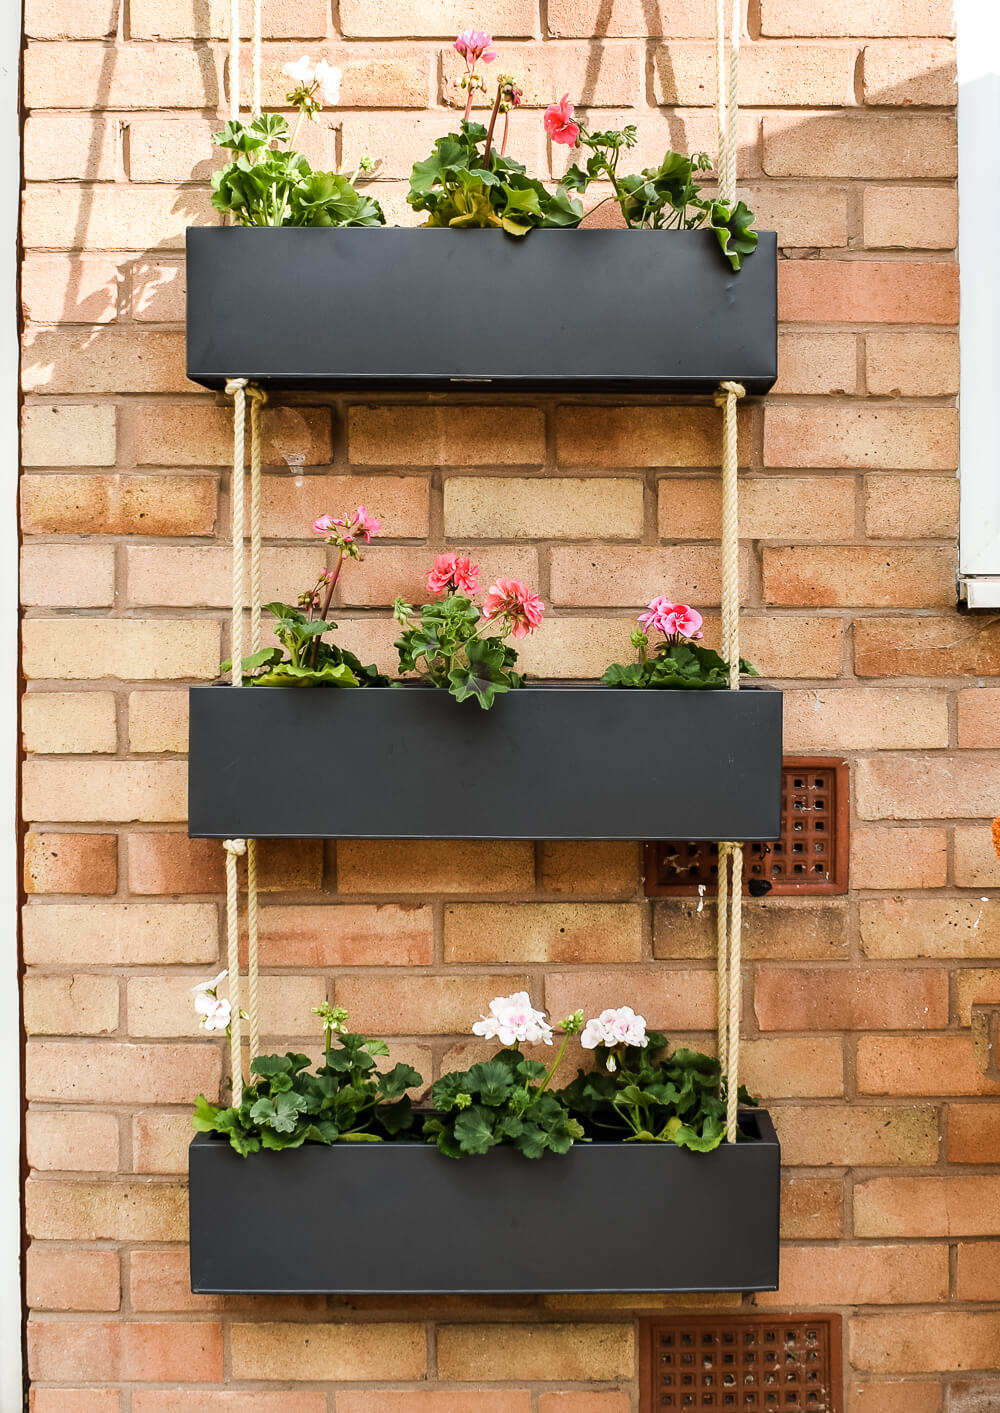 Black outdoor hanging basket on a brick wall